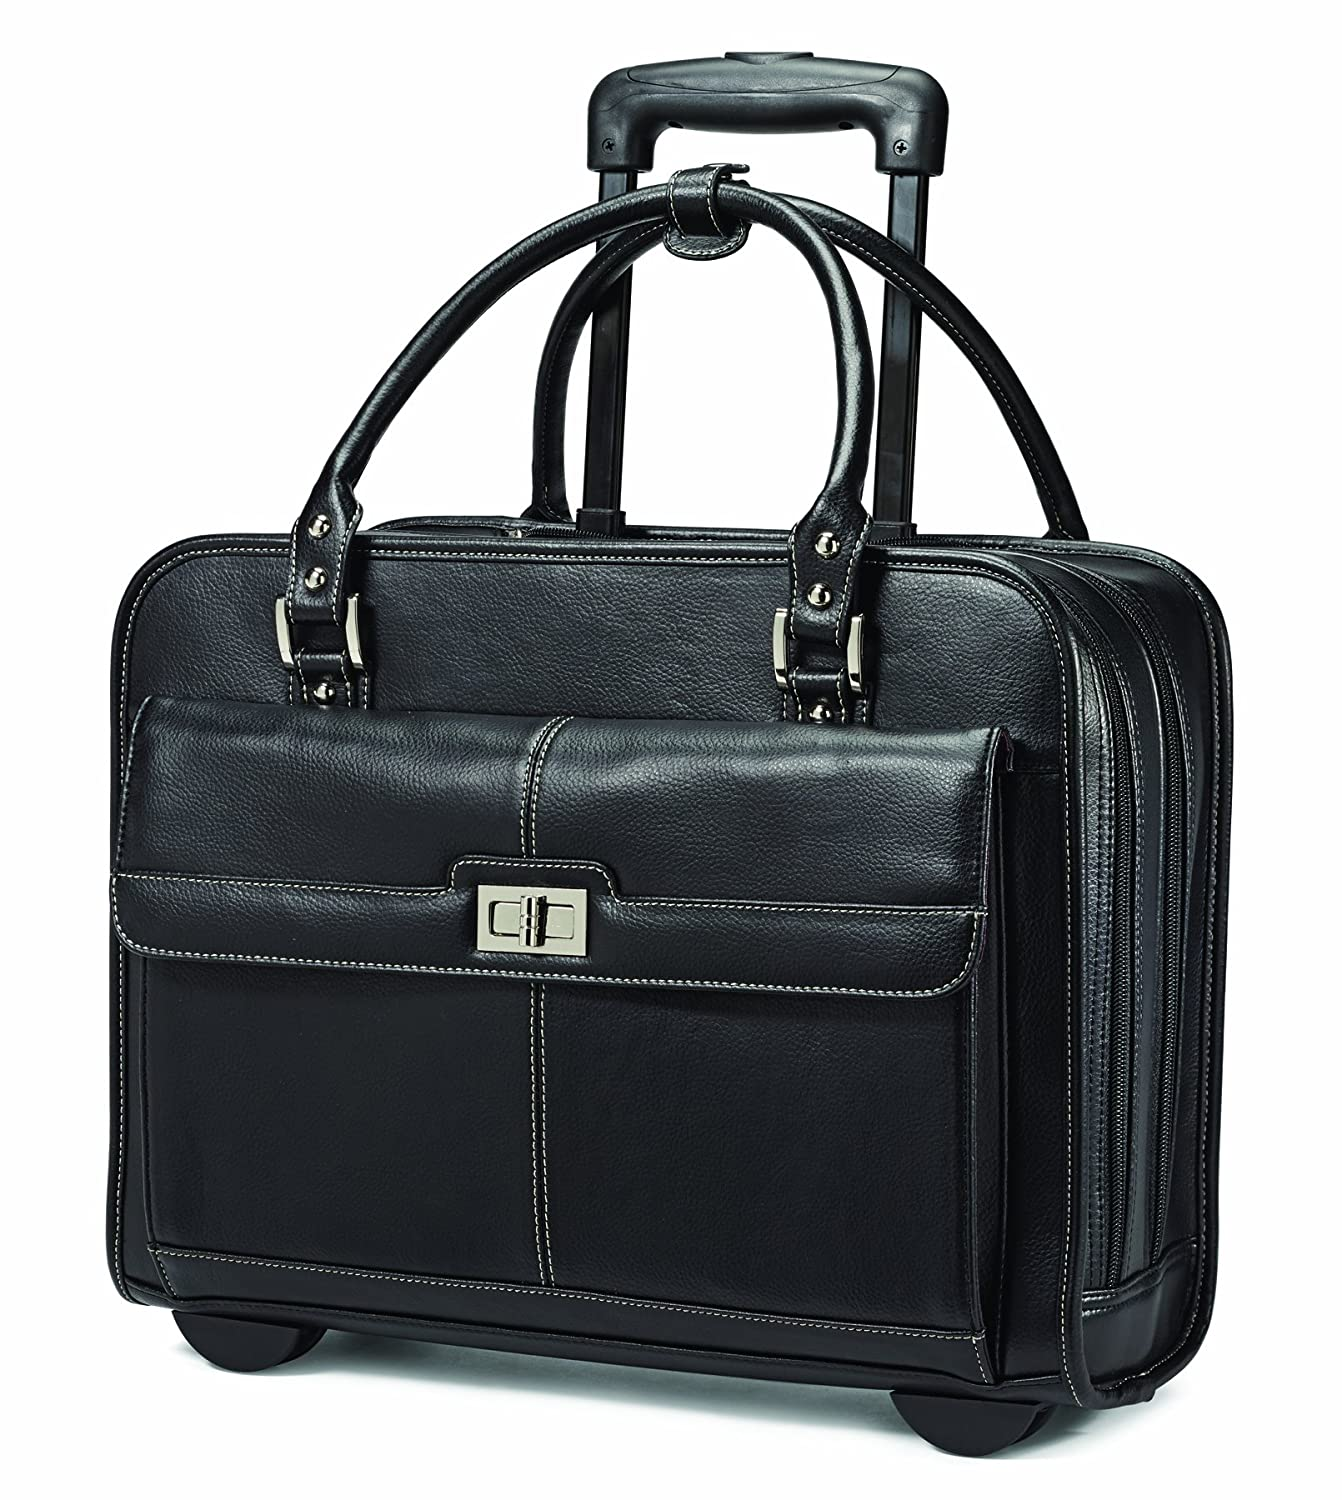 Samsonite Women's Mobile Office, Black, One Size Samsonite Corporation 56733-1041